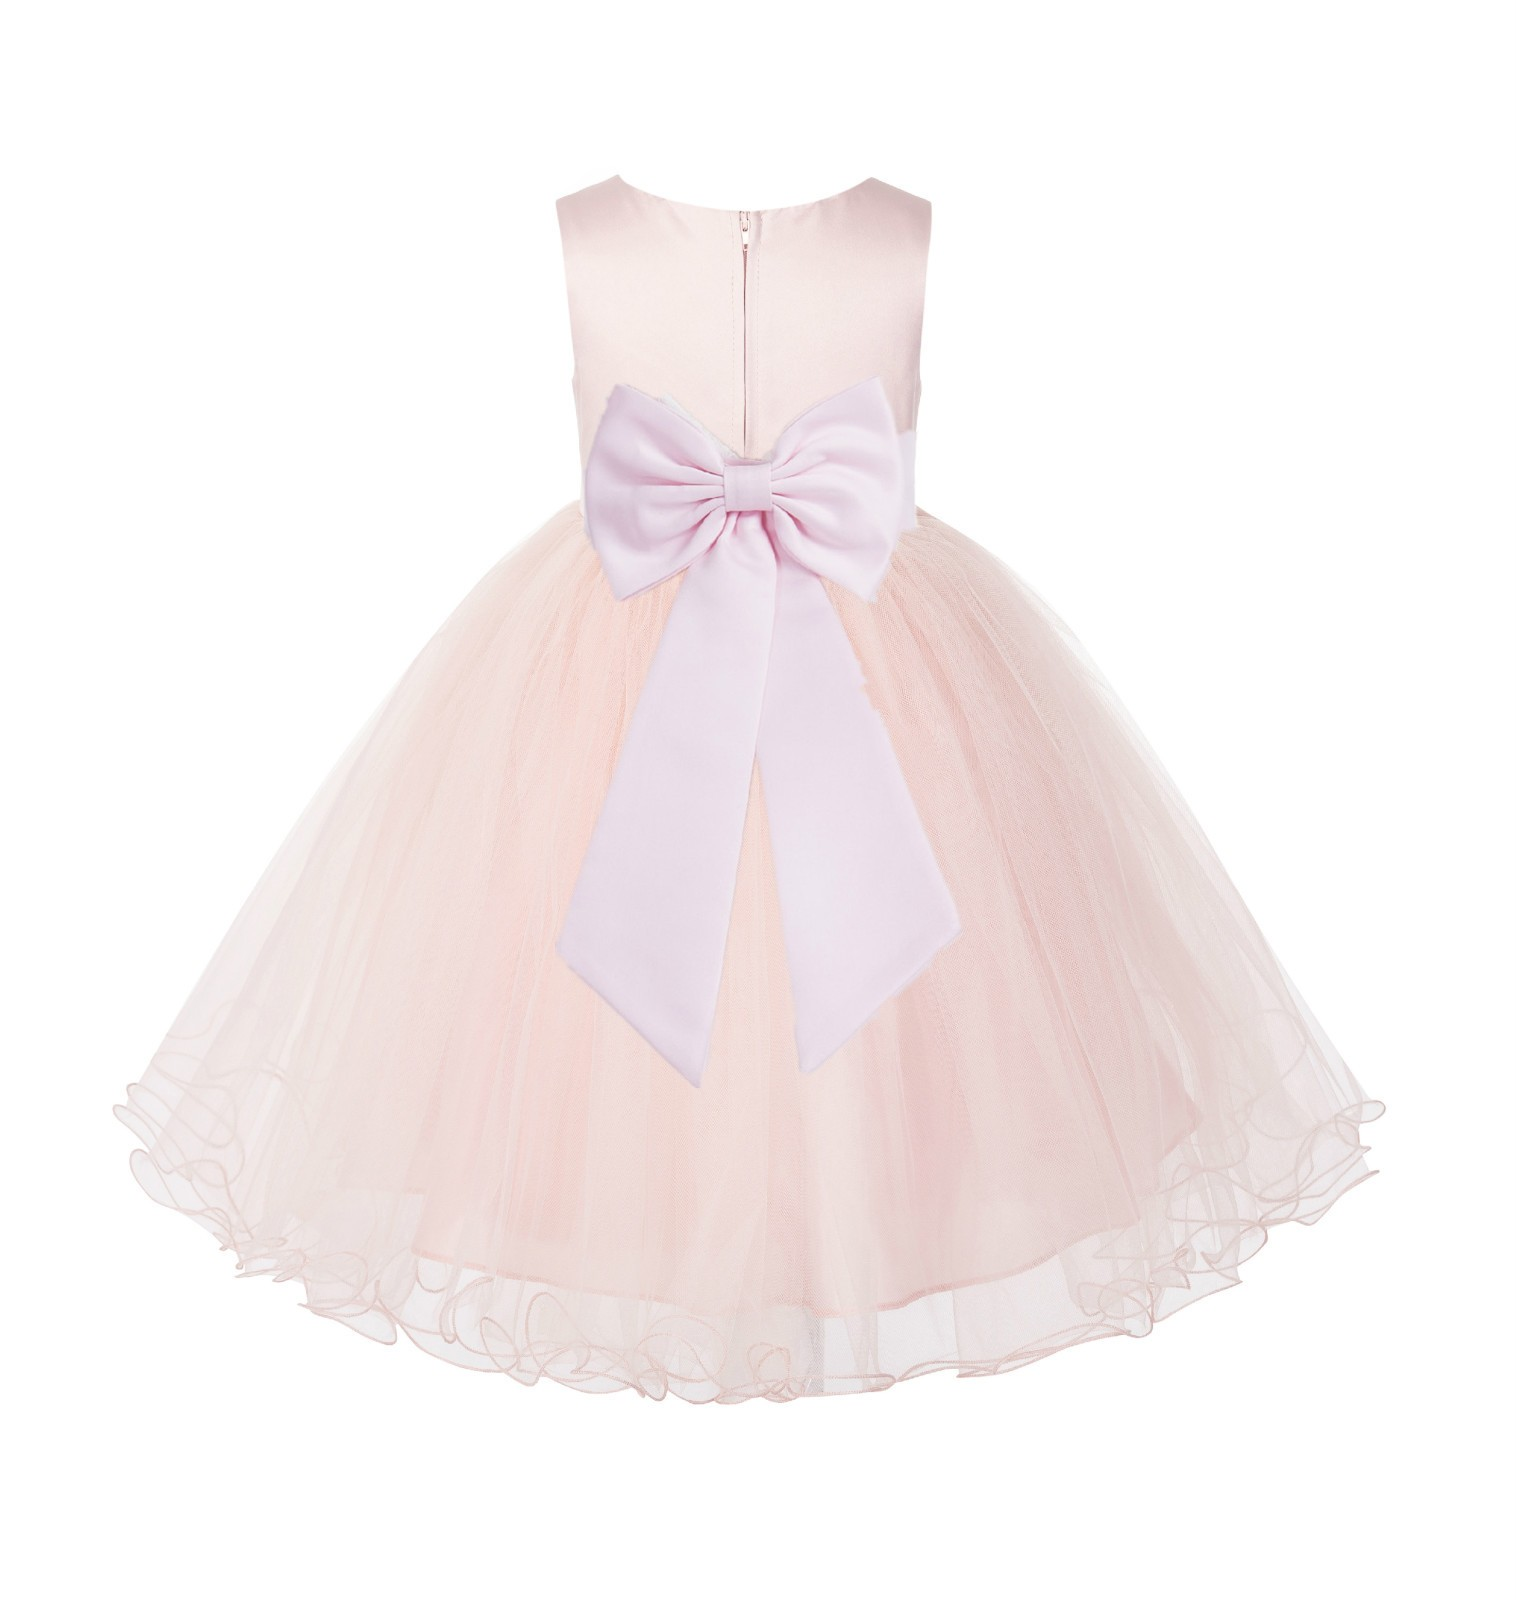 Blush PInk / Pink Tulle Rattail Edge Flower Girl Dress Wedding Bridesmaid 829T